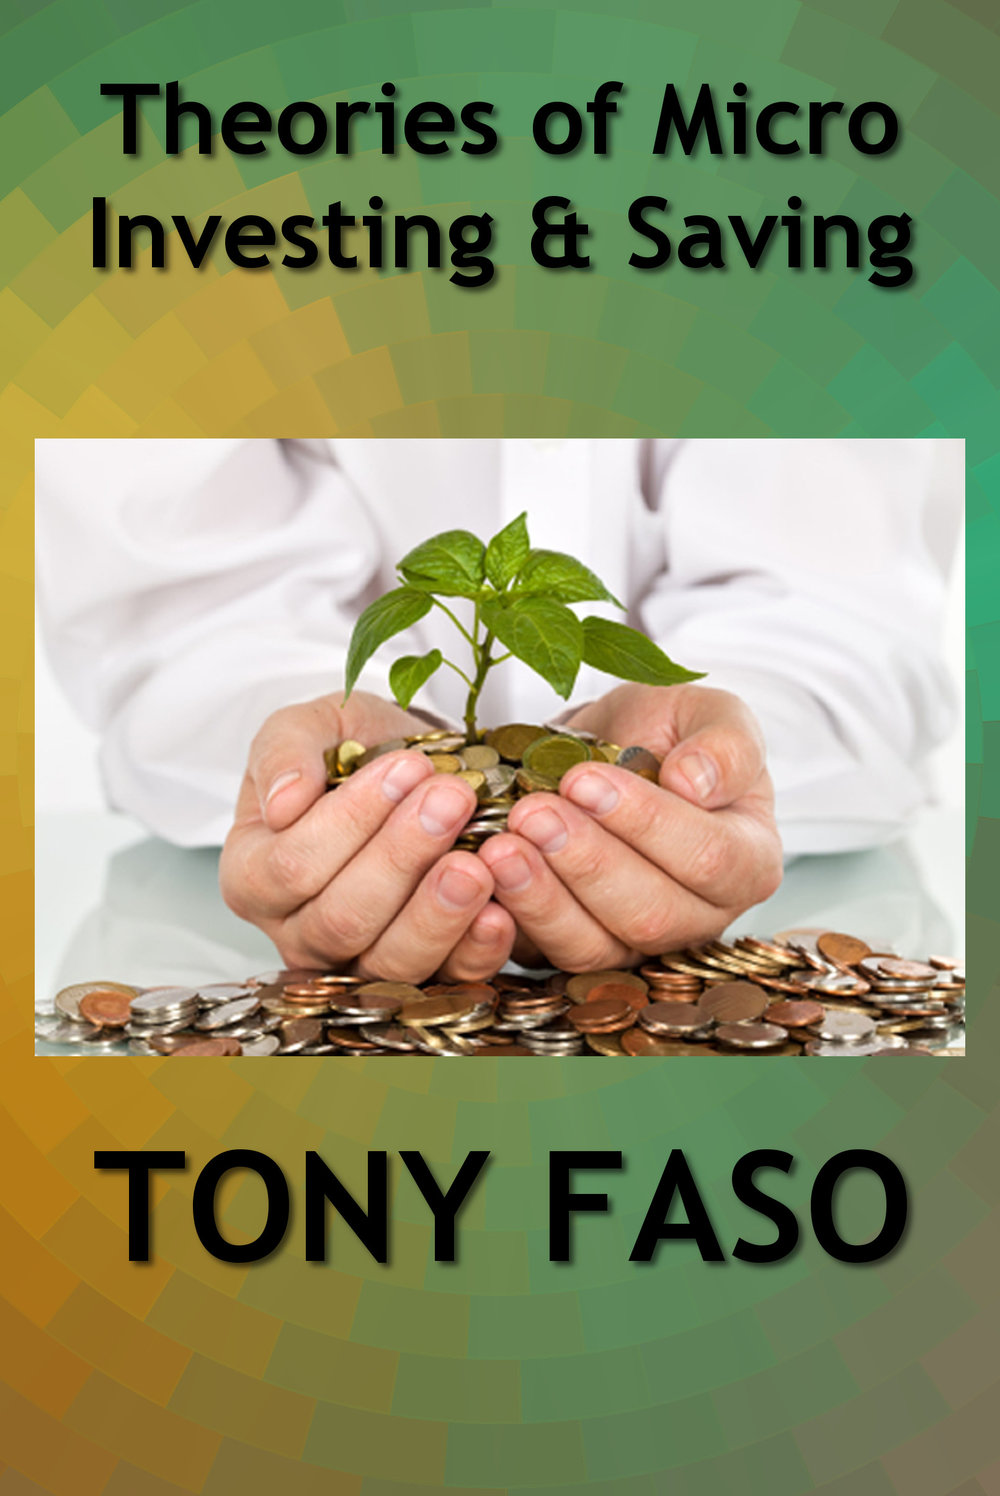 Theories of Micro Investing and Saving BookCovers.jpg